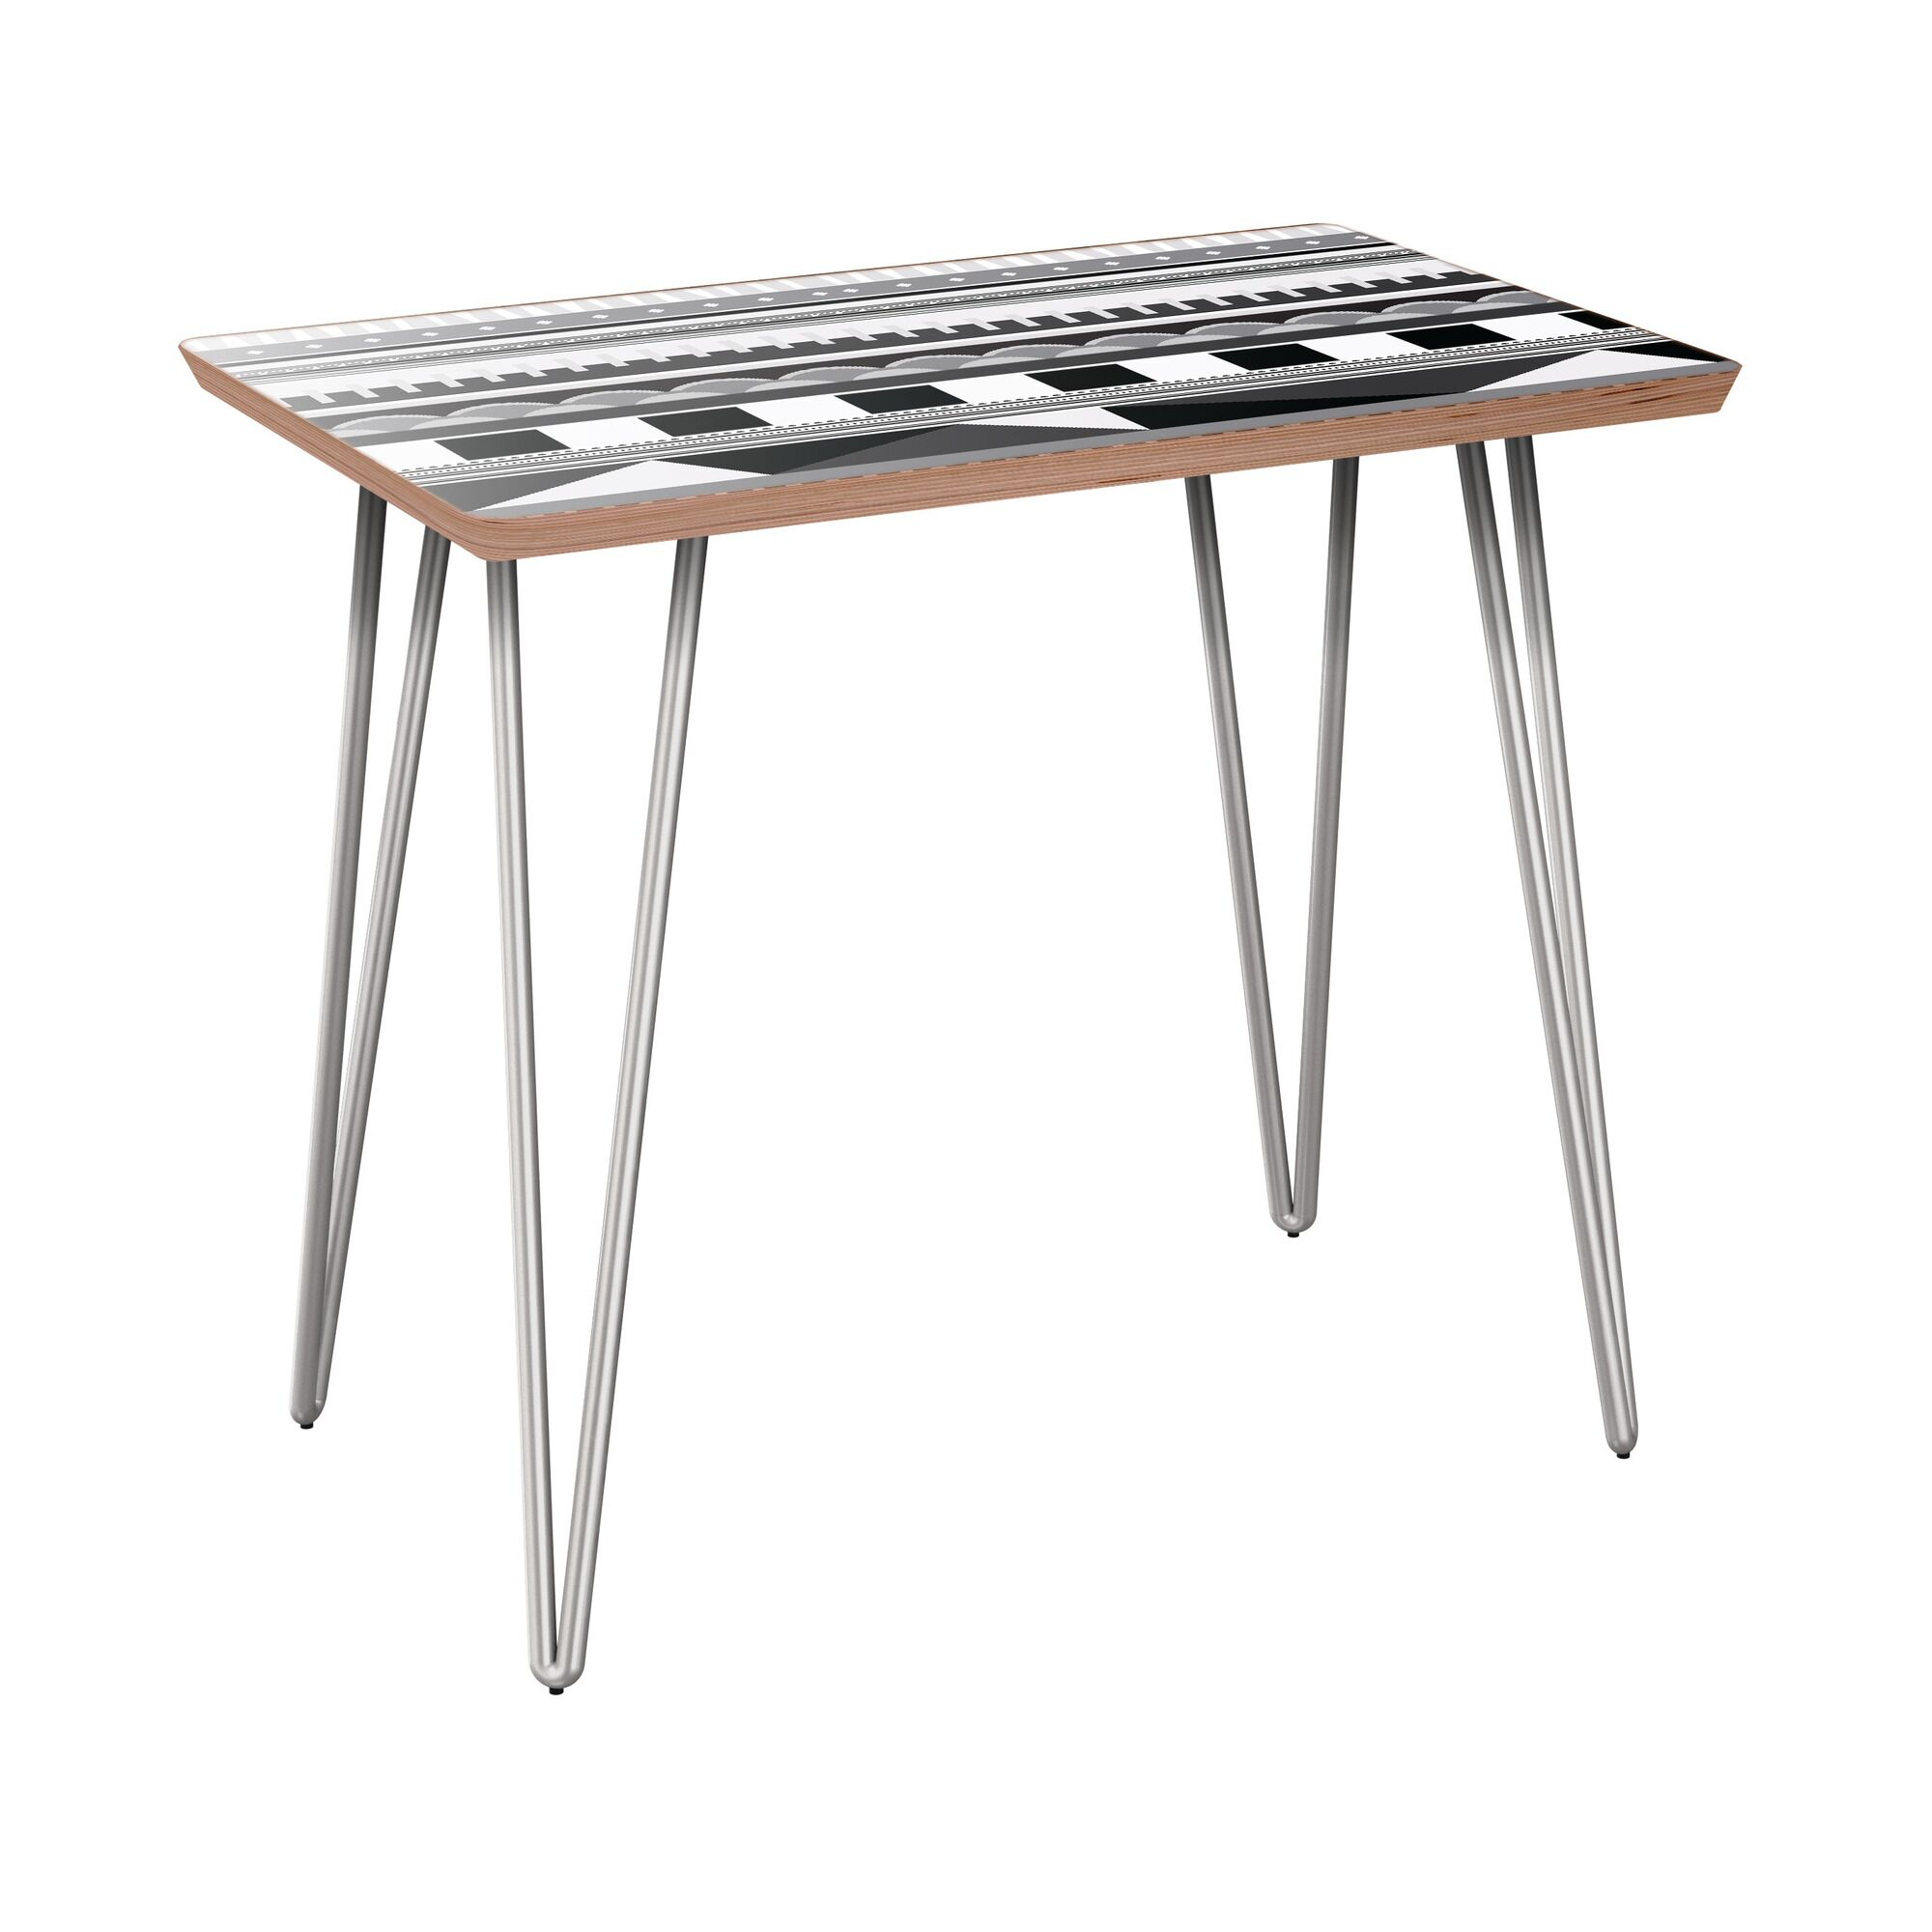 Horatio End Table Table Top Color: Walnut, Table Base Color: Chrome